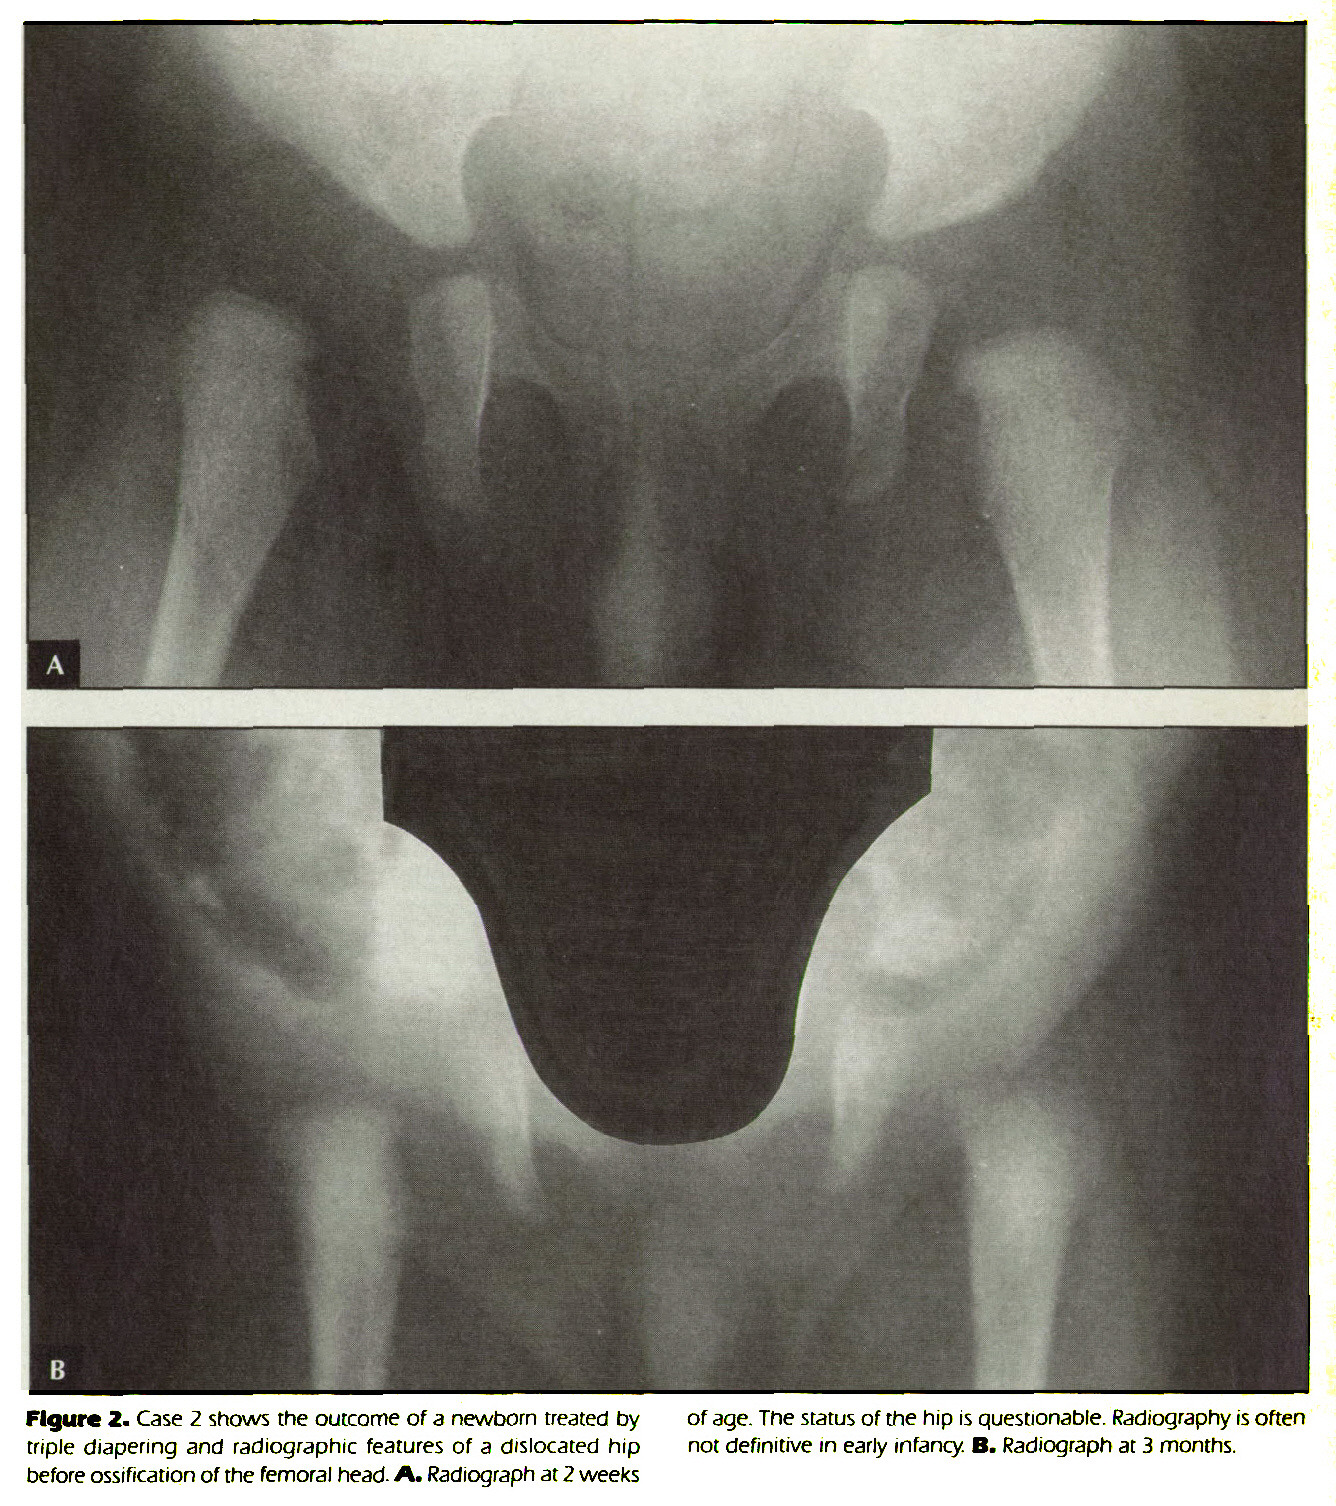 Figure 2. Case 2 shows the outcome of a newborn treated by triple diapering and radiographic features of a dislocated hip before ossification of the femoral head- A. Radiograph at 2 weeks of age. The status of the hip is questionable. Radiography is often not definitive in early infancy. B. Radiograph at 3 months.